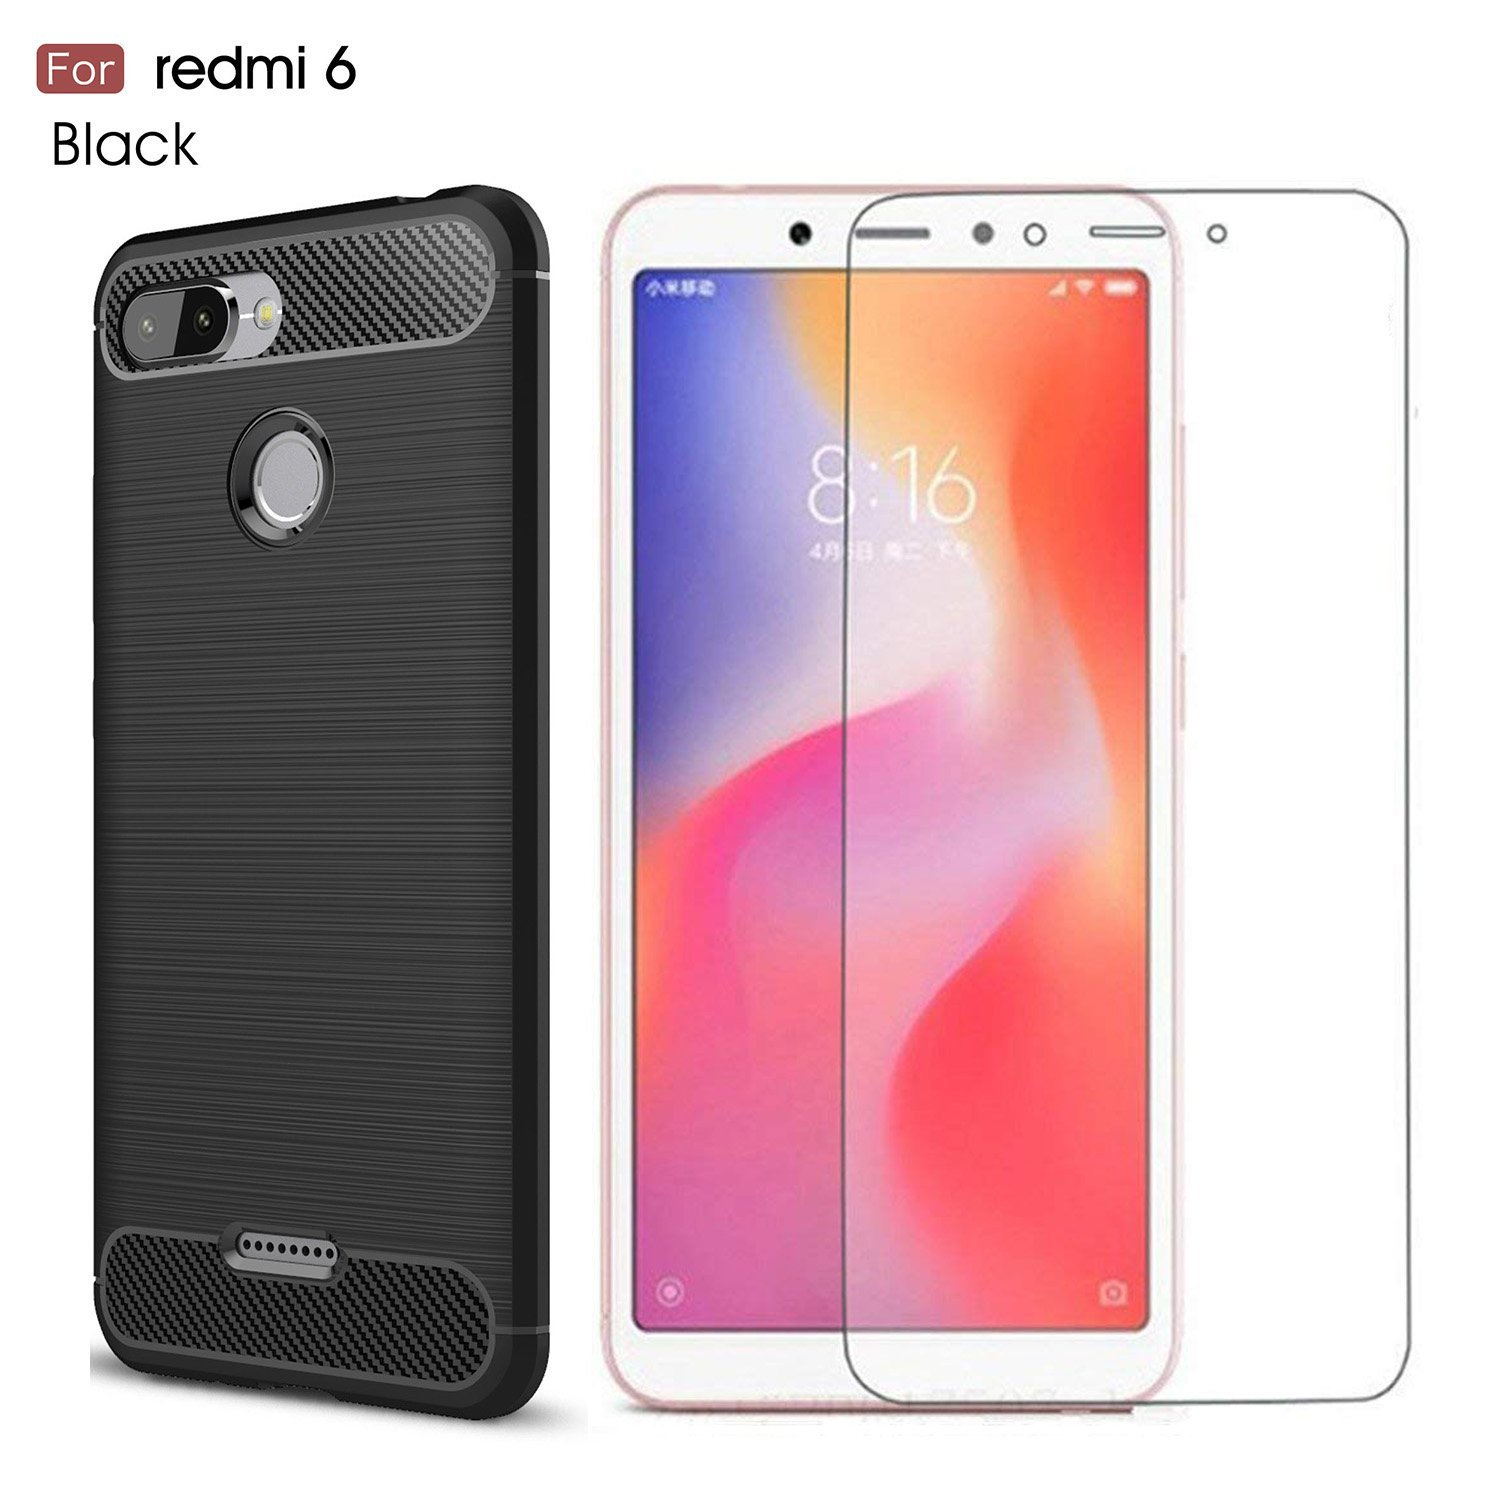 on sale c5e13 3336a Amazon.com: Xiaomi Redmi 6 case,with Xiaomi Redmi 6 Screen Protector ...